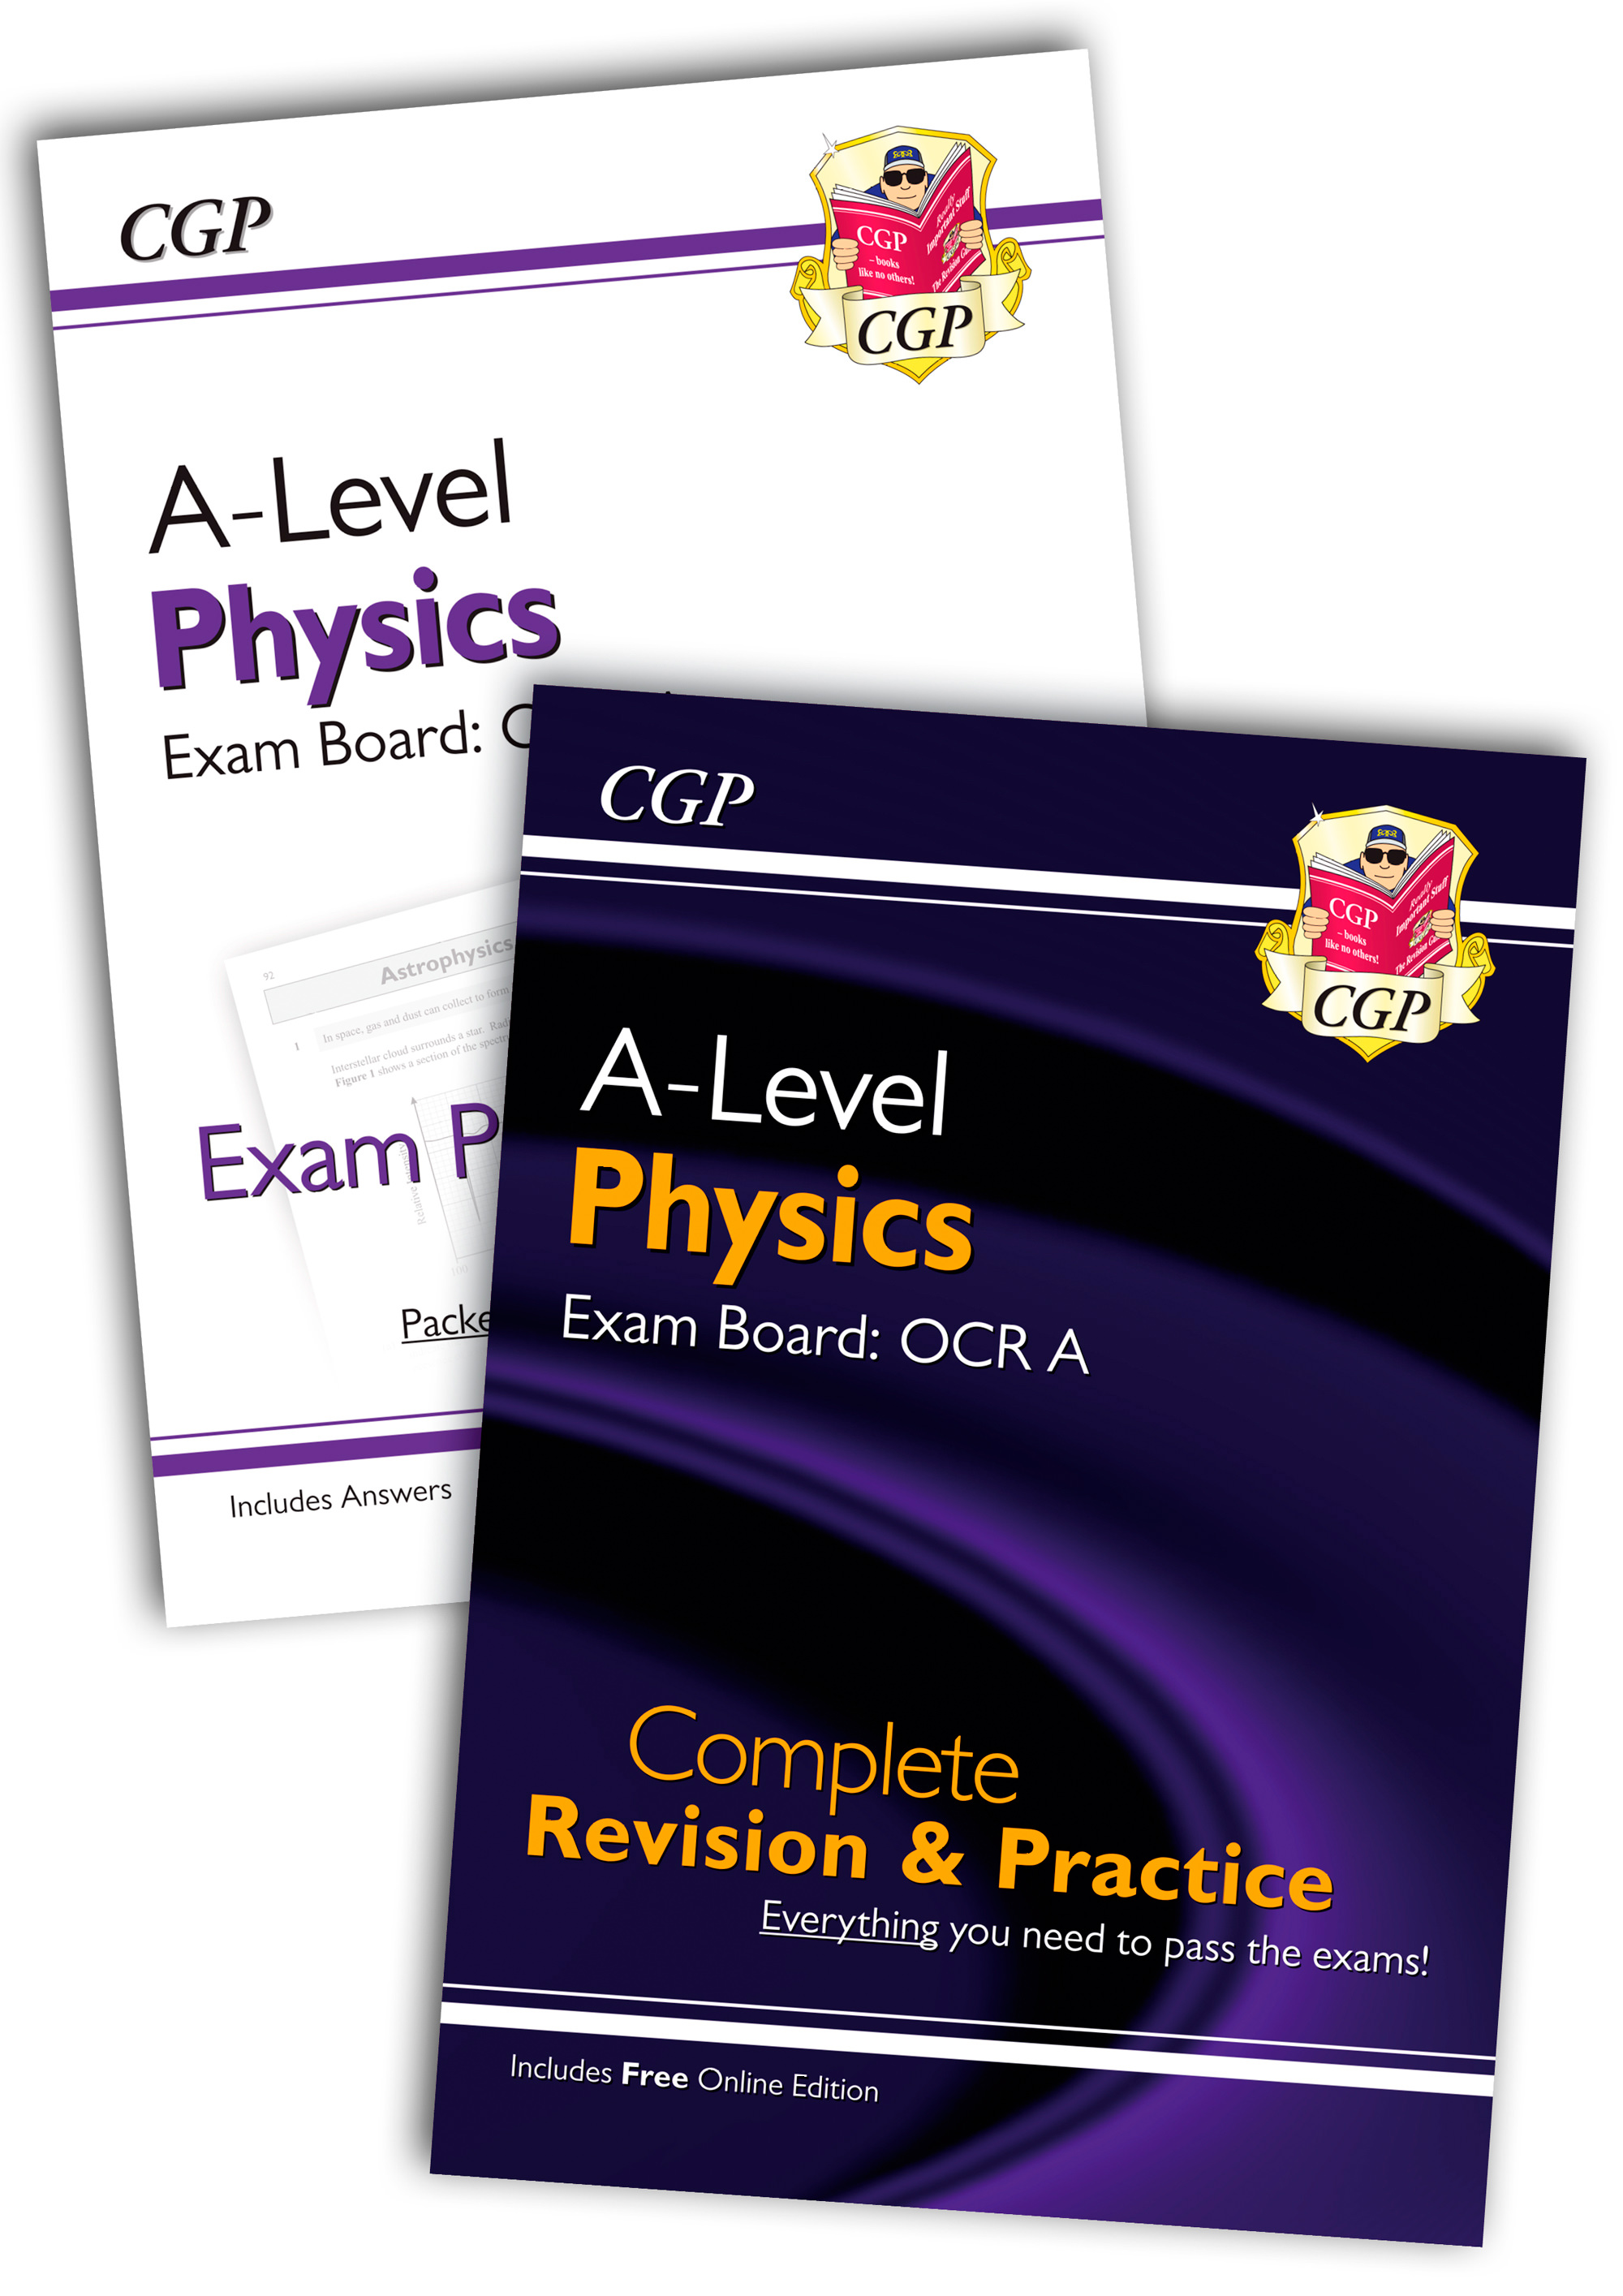 PRARQB71 - New Complete Revision and Exam Practice A-Level Physics Bundle: OCR A Year 1 & 2